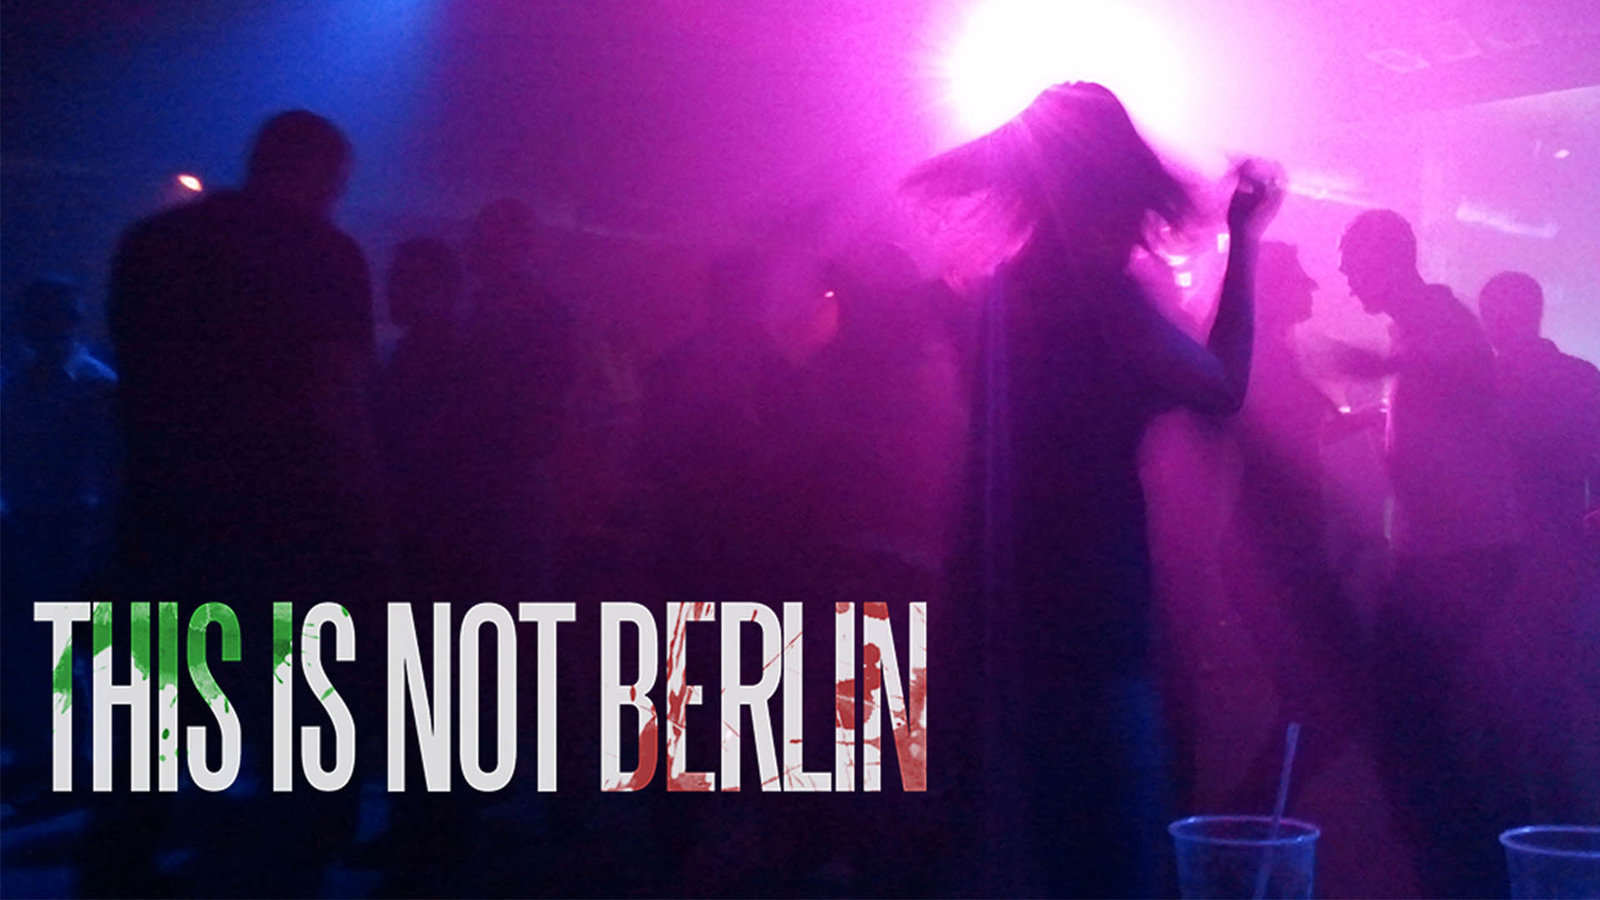 This Is Not Berlin - Esto no es Berlín